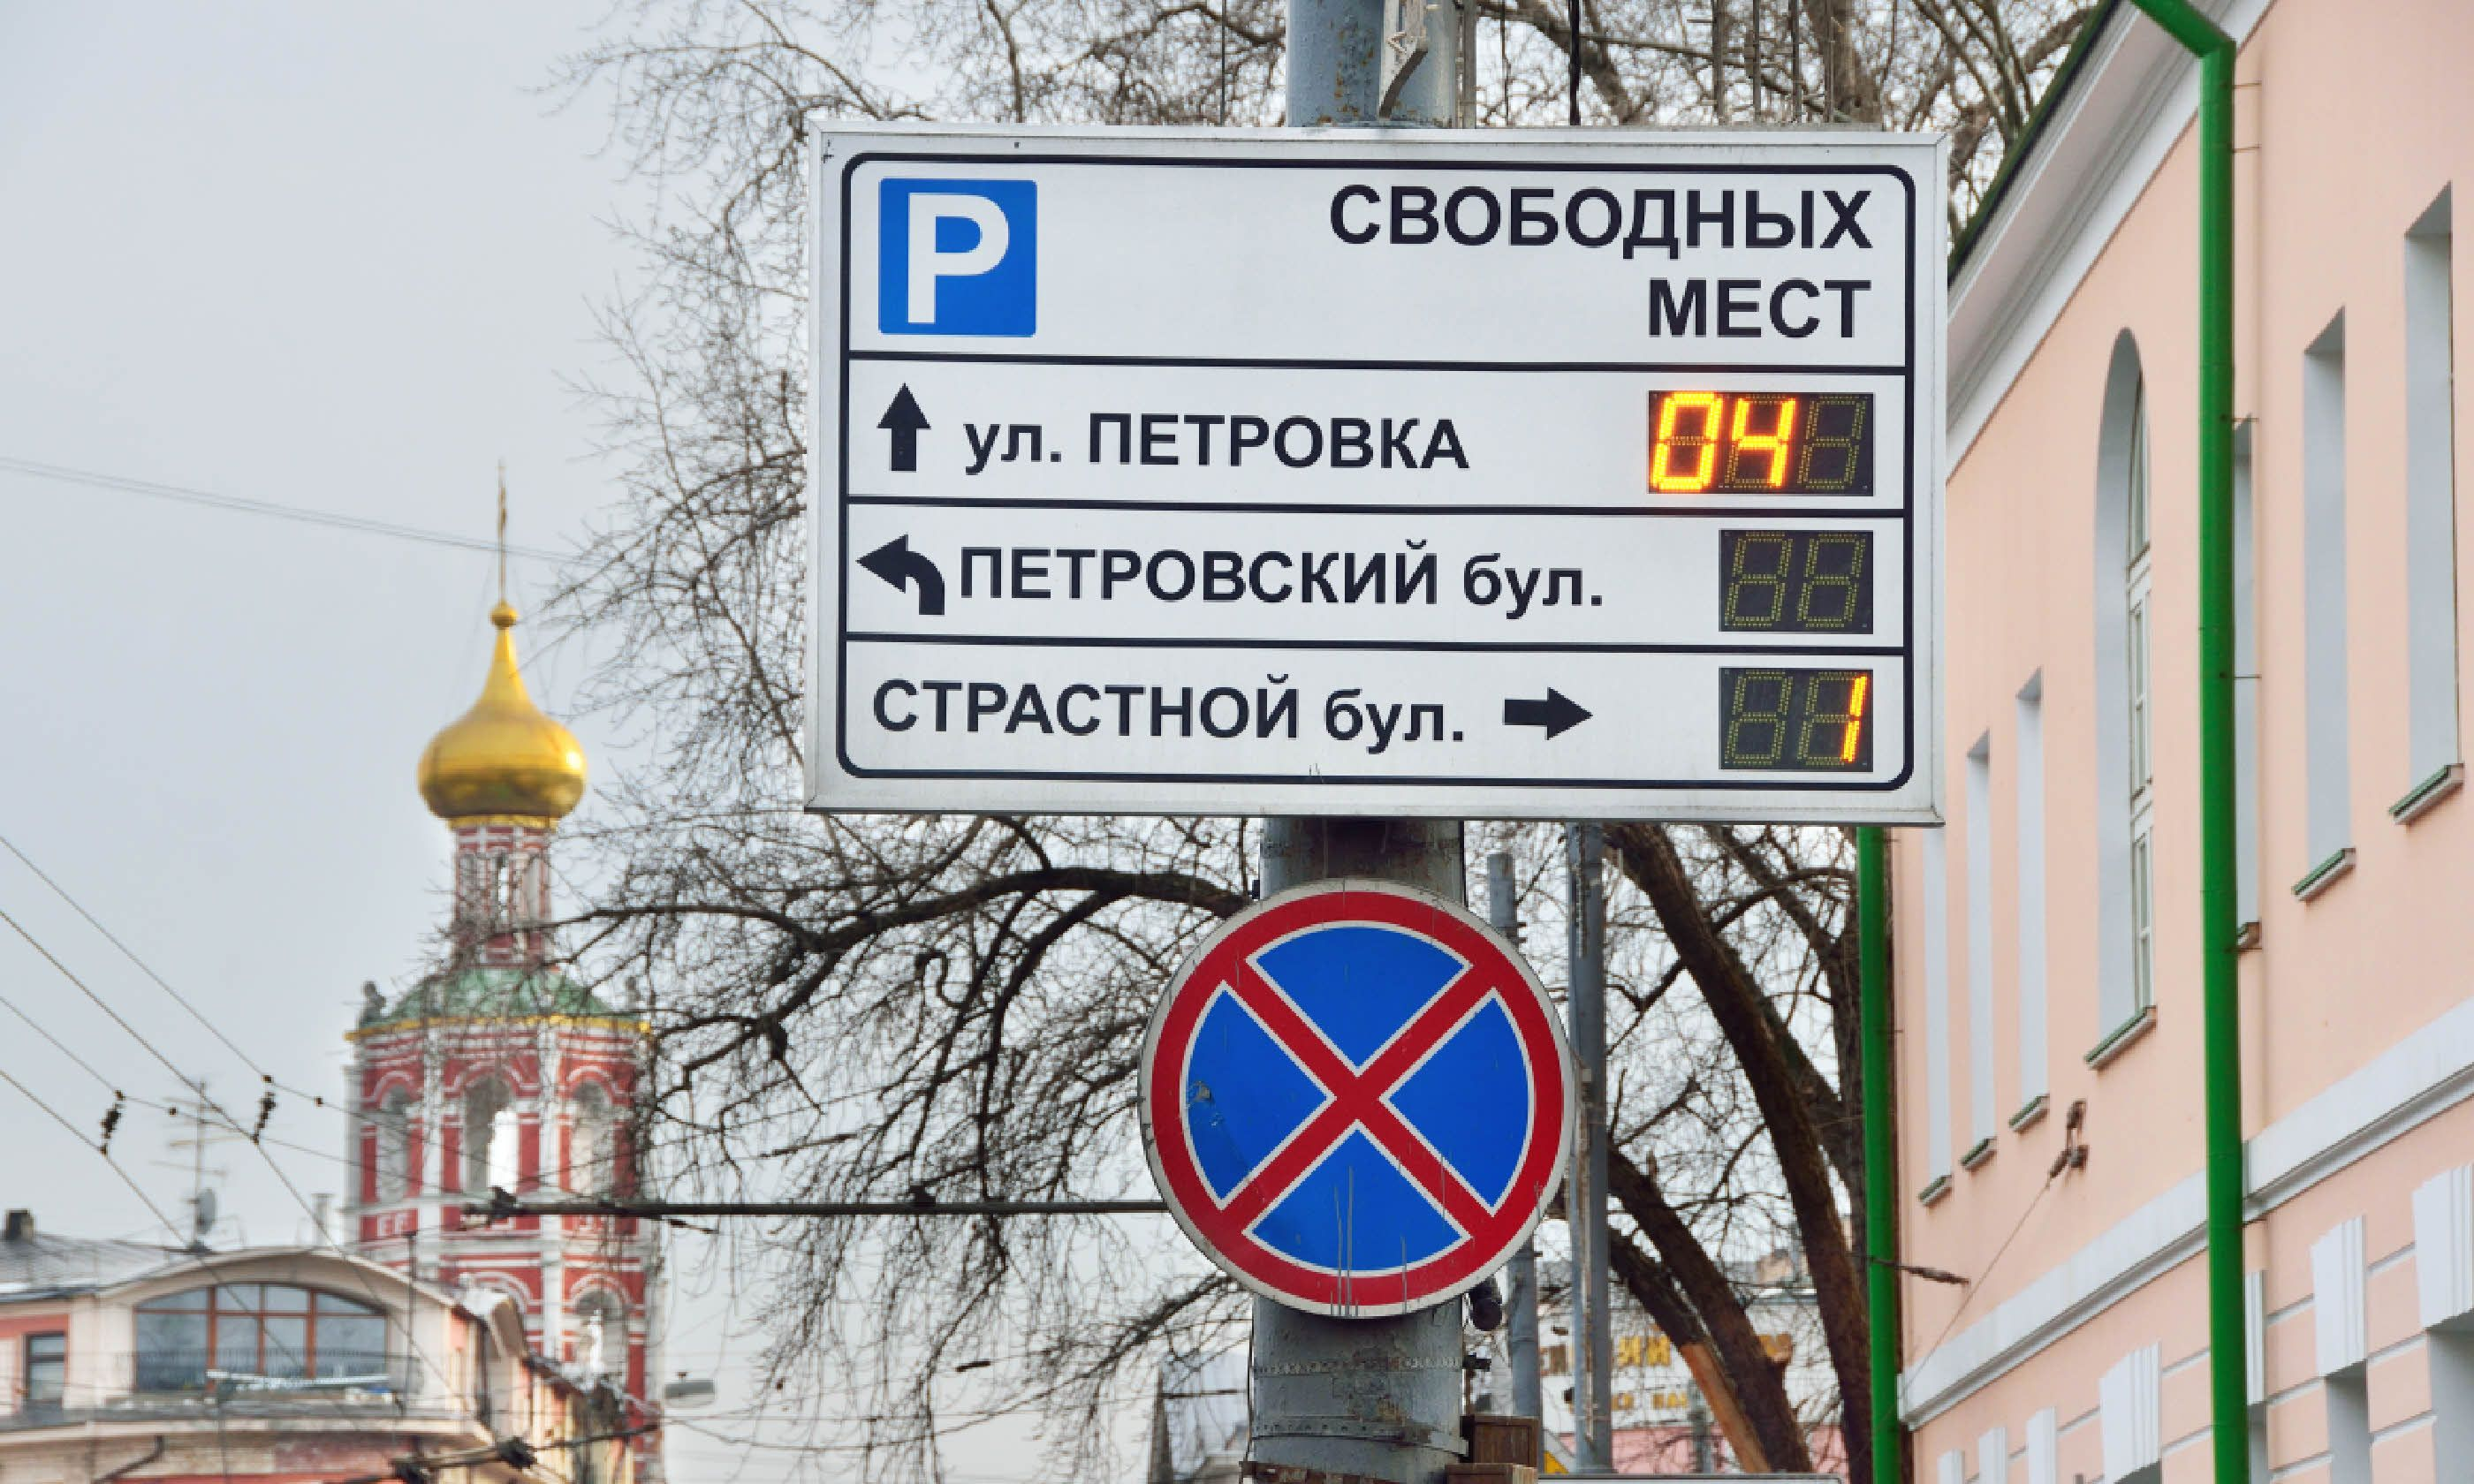 Sign in Moscow, Russia (Shutterstock)